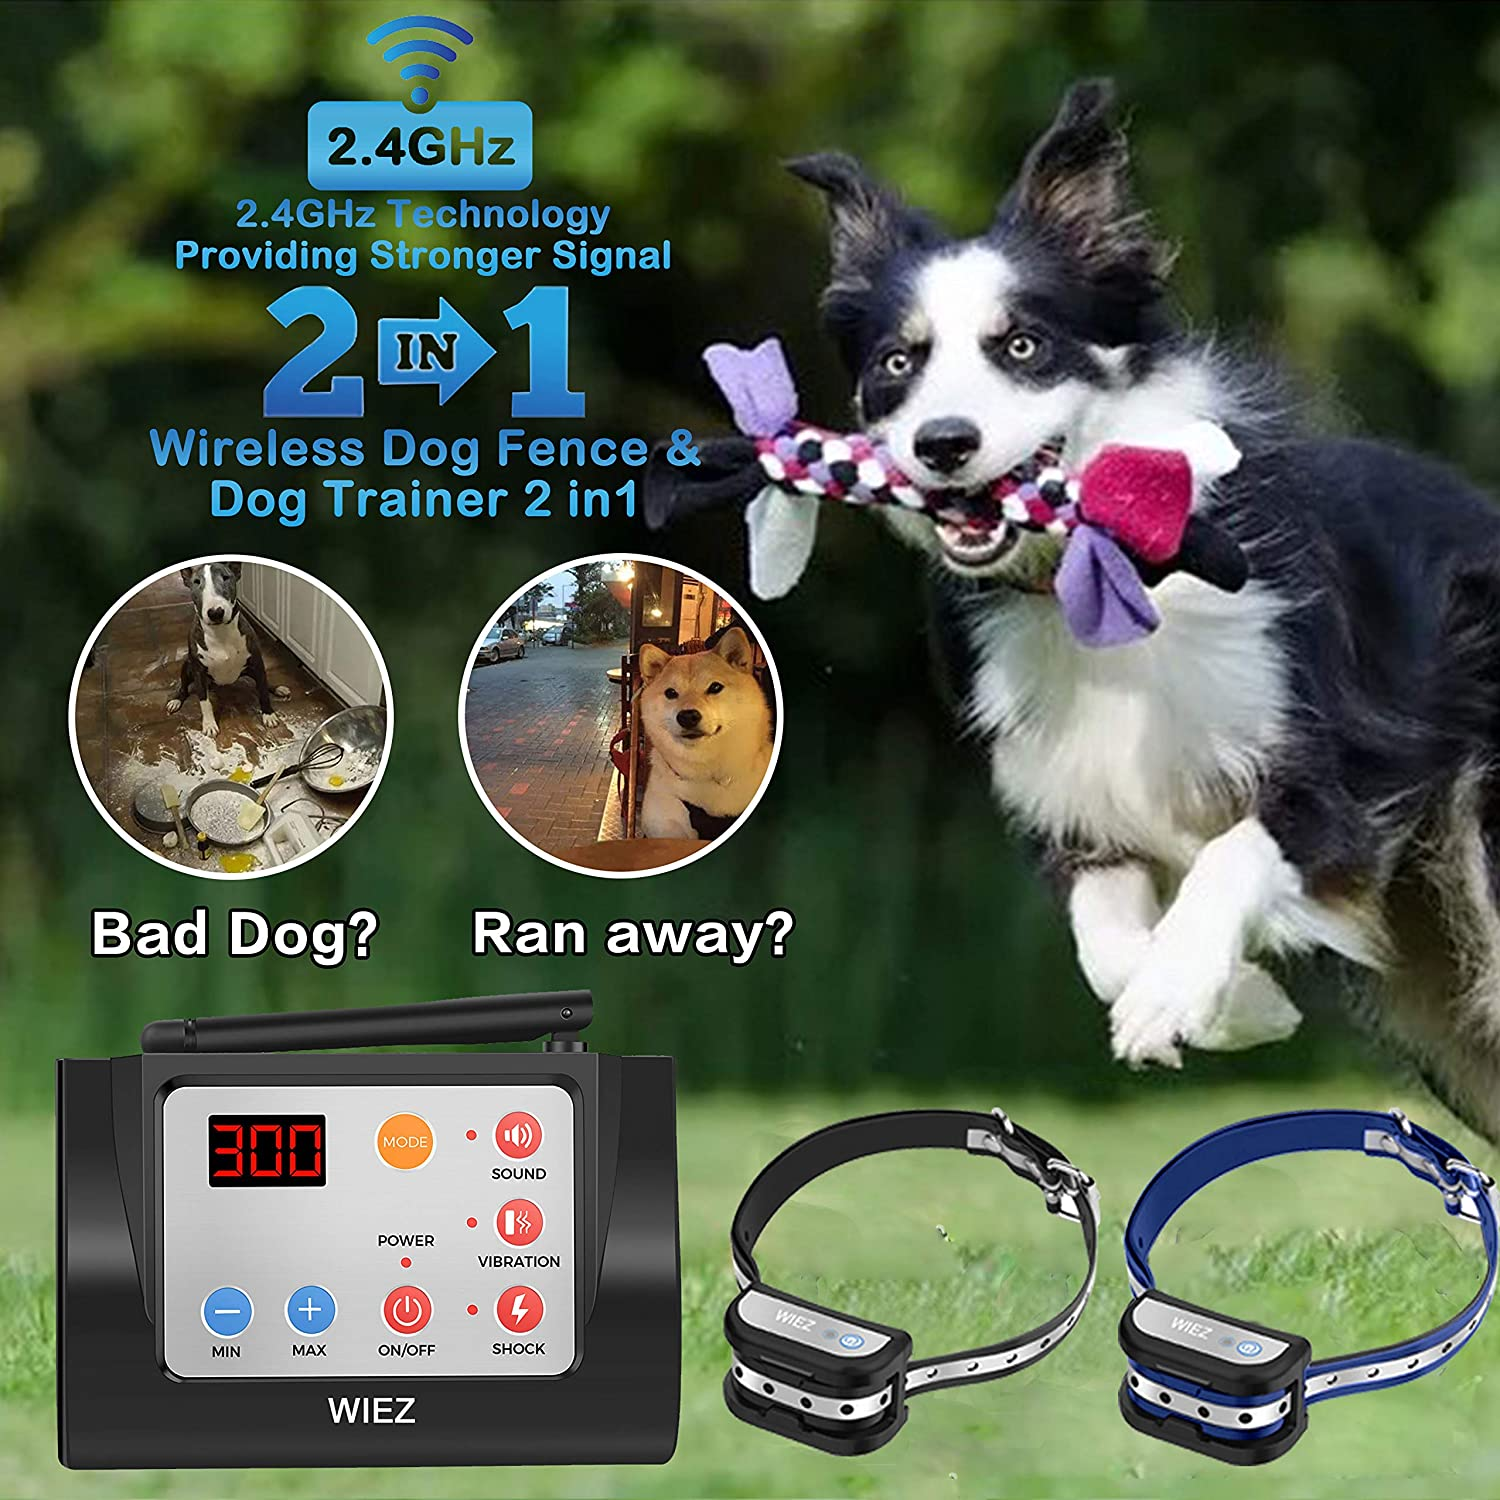 WIEZ Dog Fence Wireless & Training Collar Outdoor 2-in-1, Electric Wireless Fence w/Remote, Adjustable Range, Waterproof, Reflective Stripe, Harmless for All Dogs